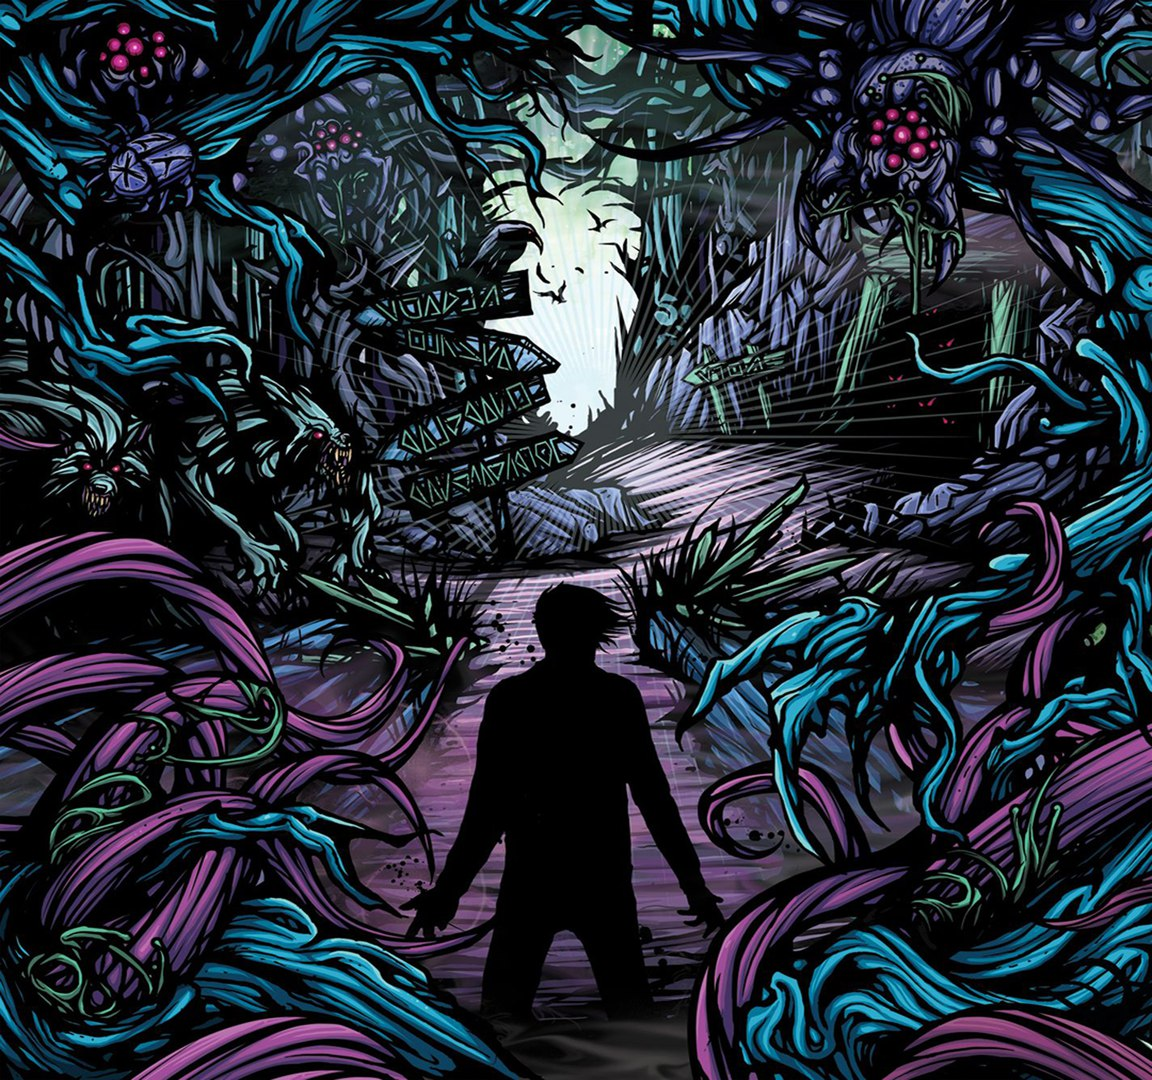 A Day to Remember - Homesick [Deluxe Edition] (2009)